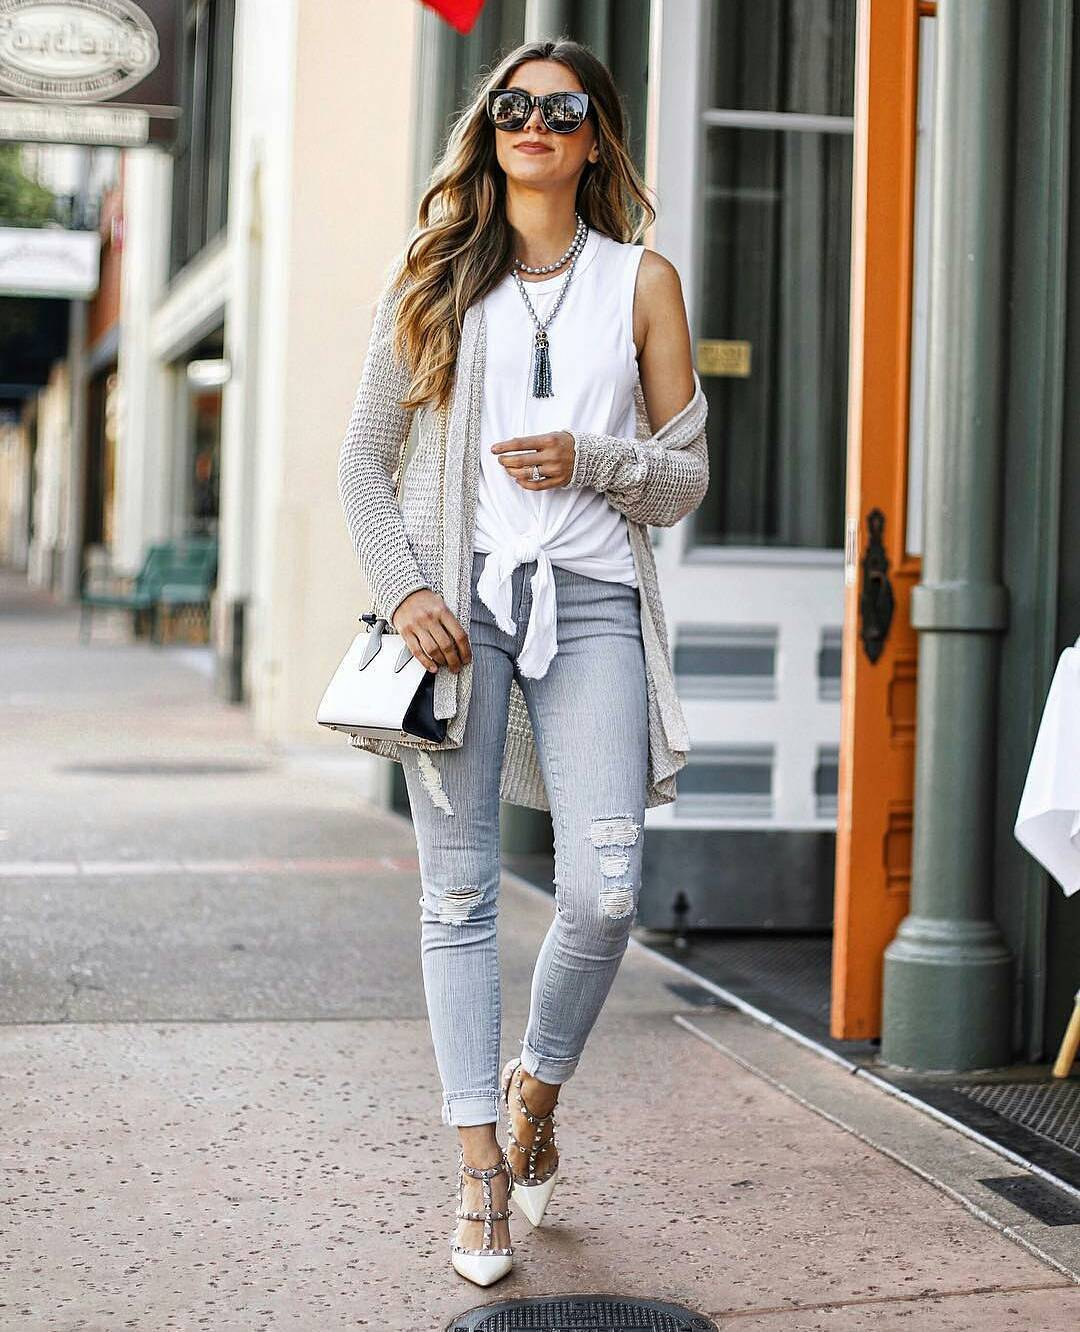 Best Spring Outfit Looks Fabulous